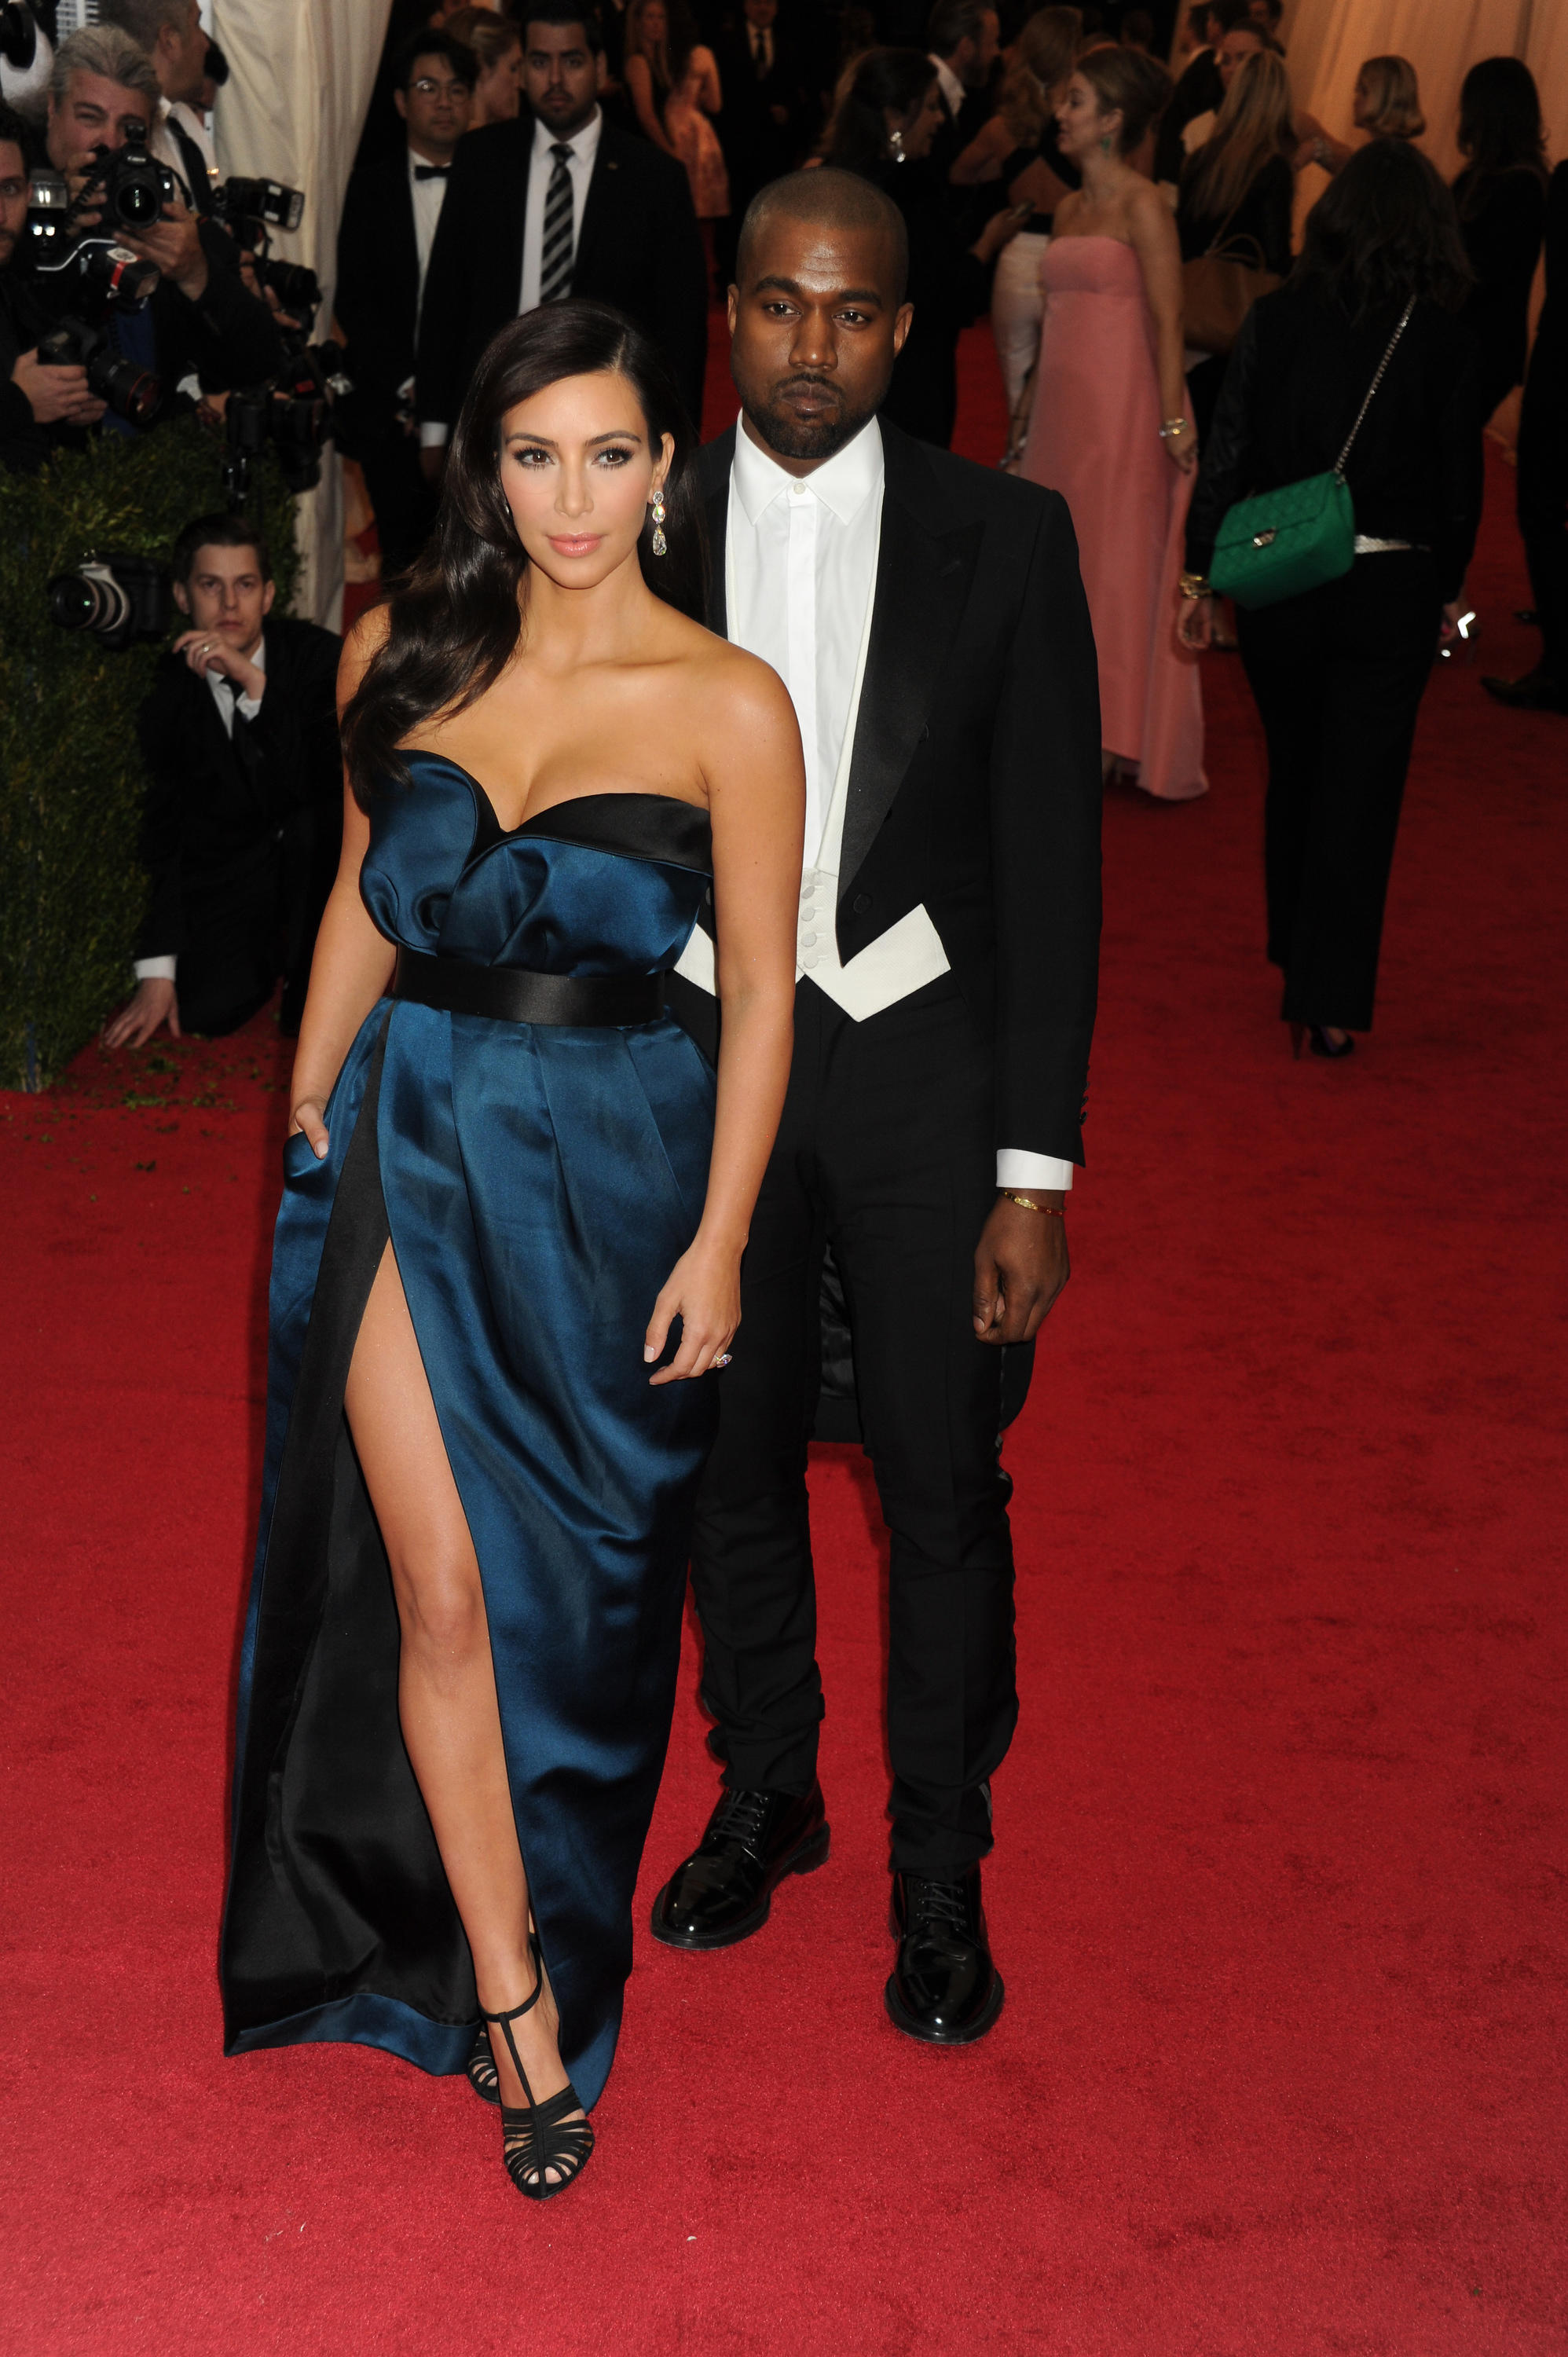 NEW YORK, NY - MAY 05: Kim Kardashian_Kanye West Attends The 'Charles James: Beyond Fashion' Costume Institute Gala At The Metropolitan Museum Of Art On May 5, 2014 In New York City. People: Kim Kardashian_Kanye West КРЕДИТ